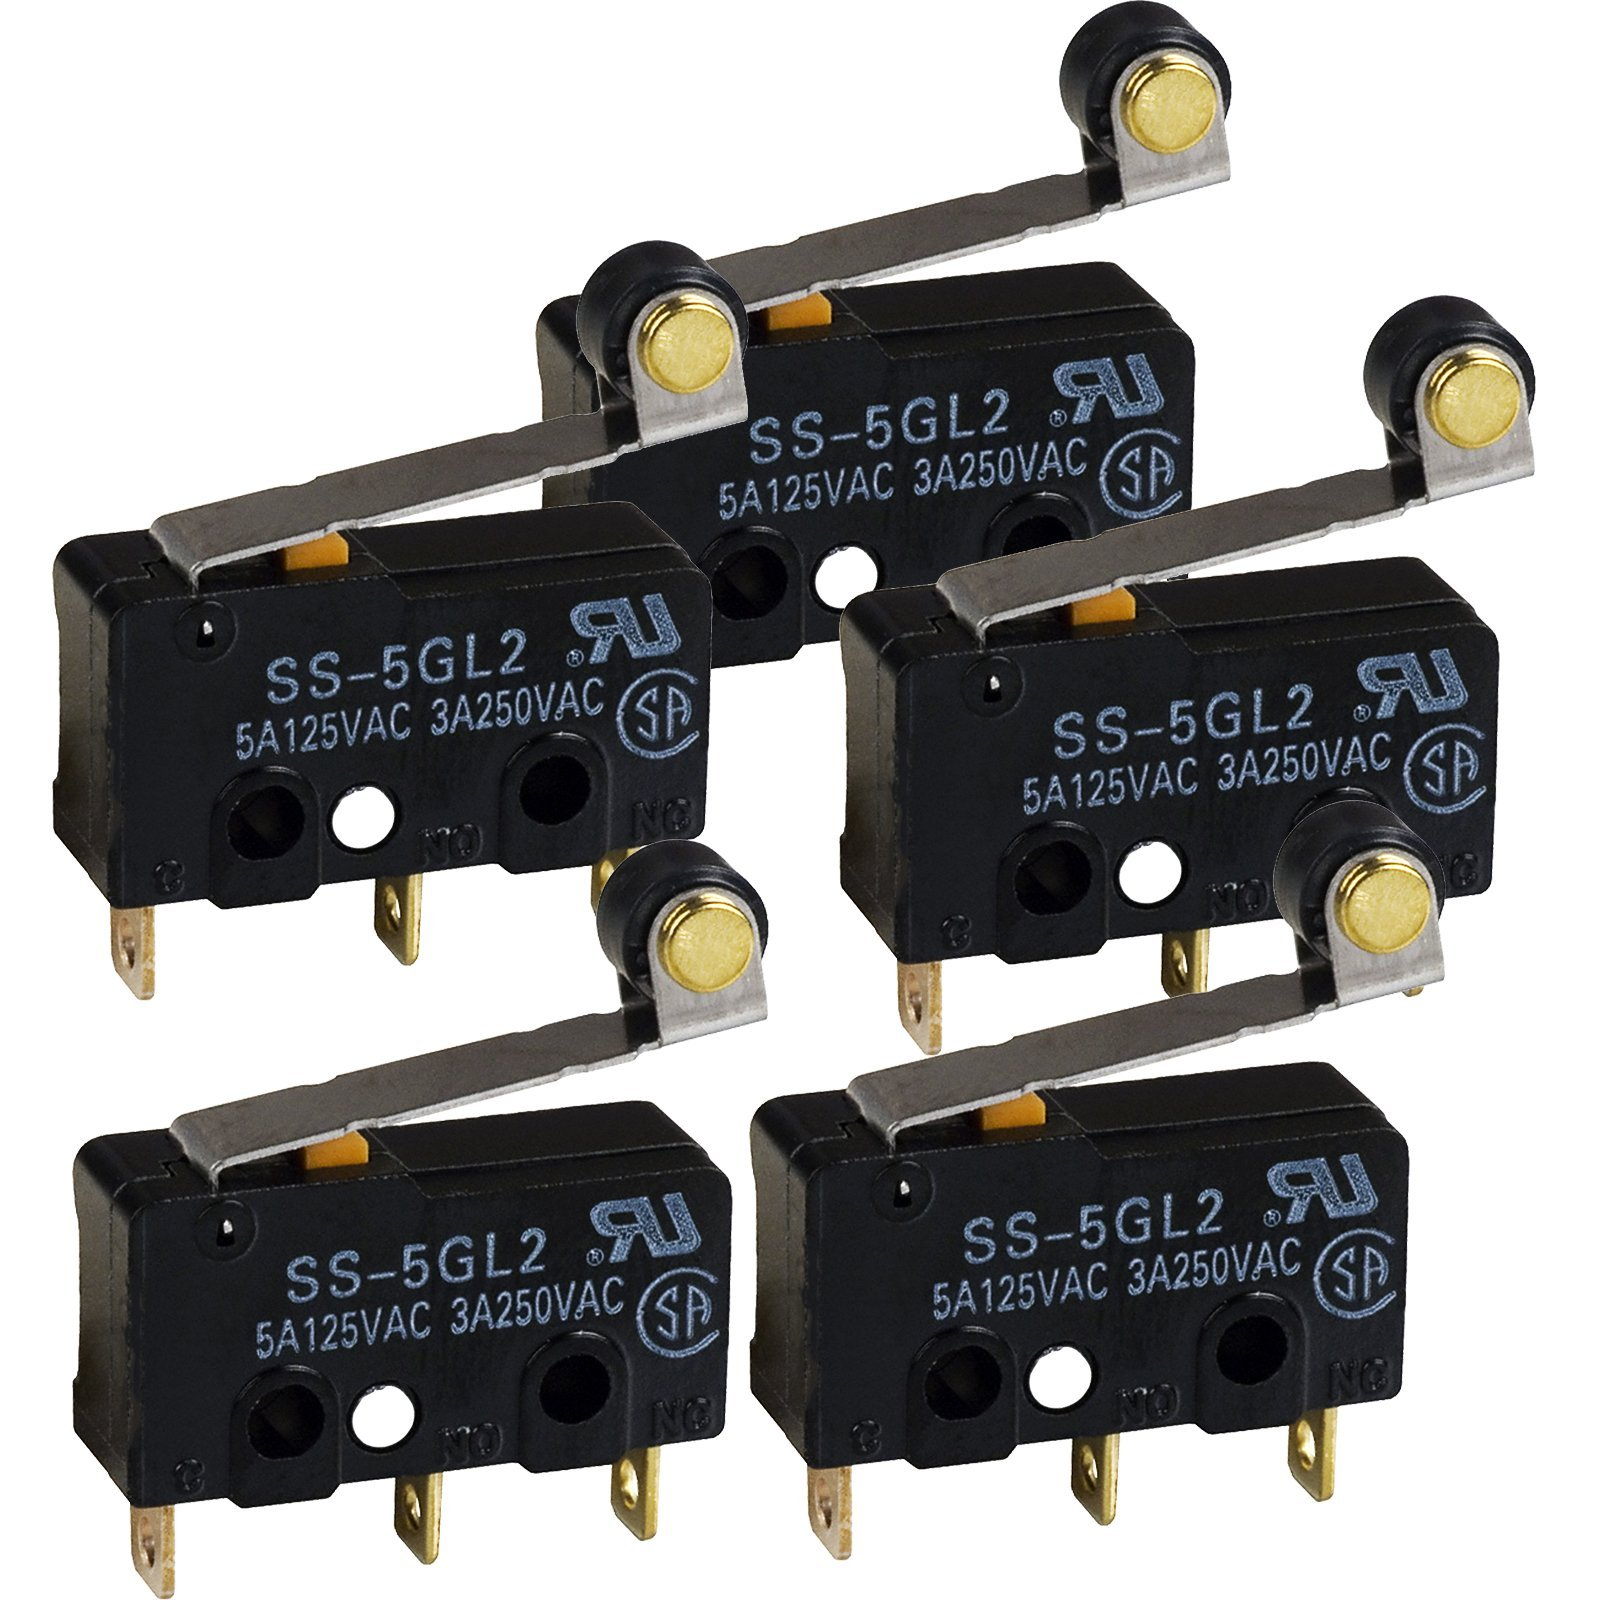 Omron SS5GL2 Microswitch 125 VAC, 5A Micro Limit Switch, Hinge Roller Momentary Snap Action (Pack of 5)